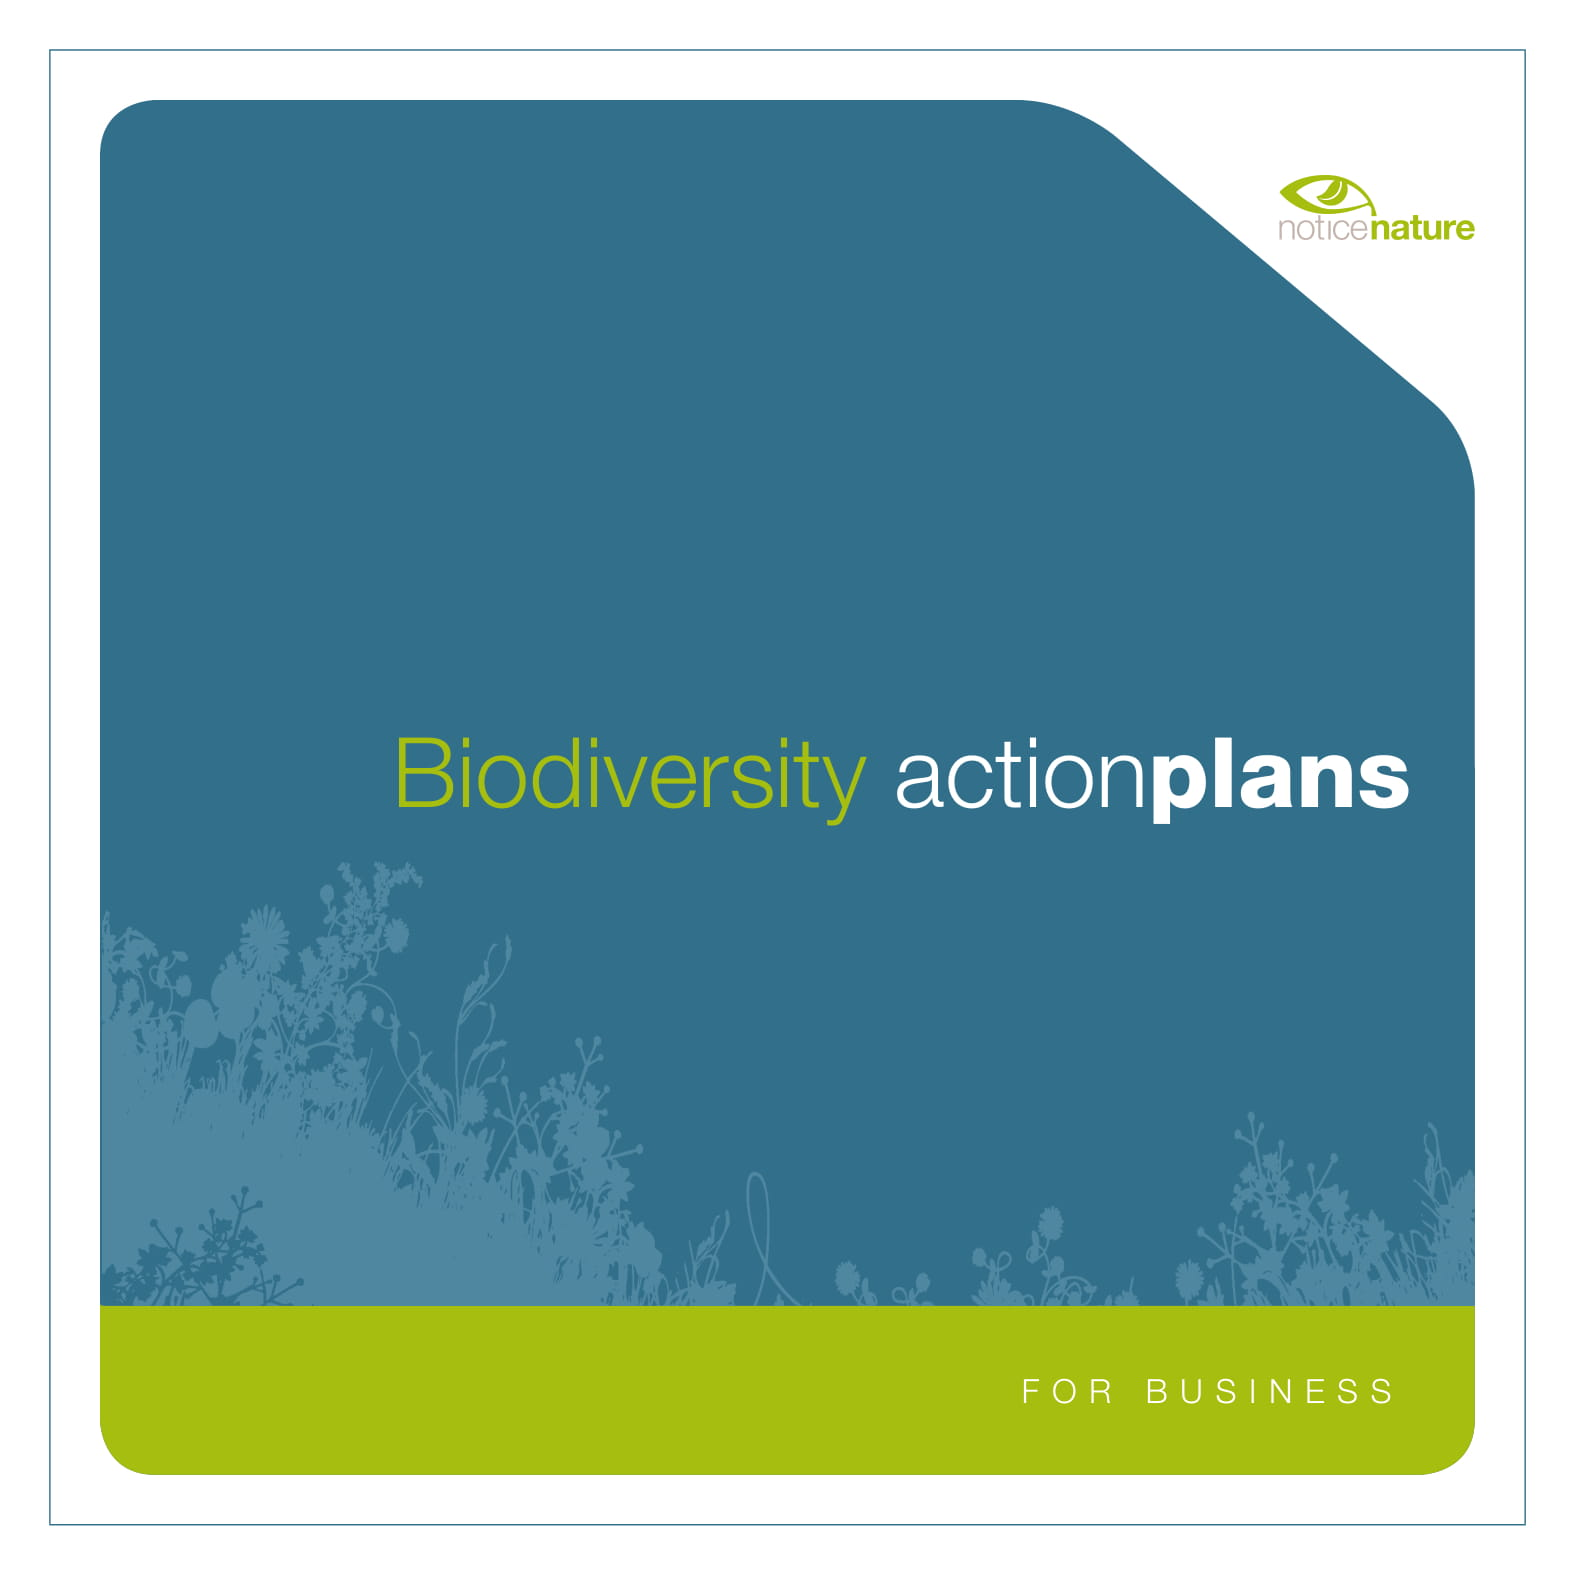 comprehensive biodiversity action plan example 1